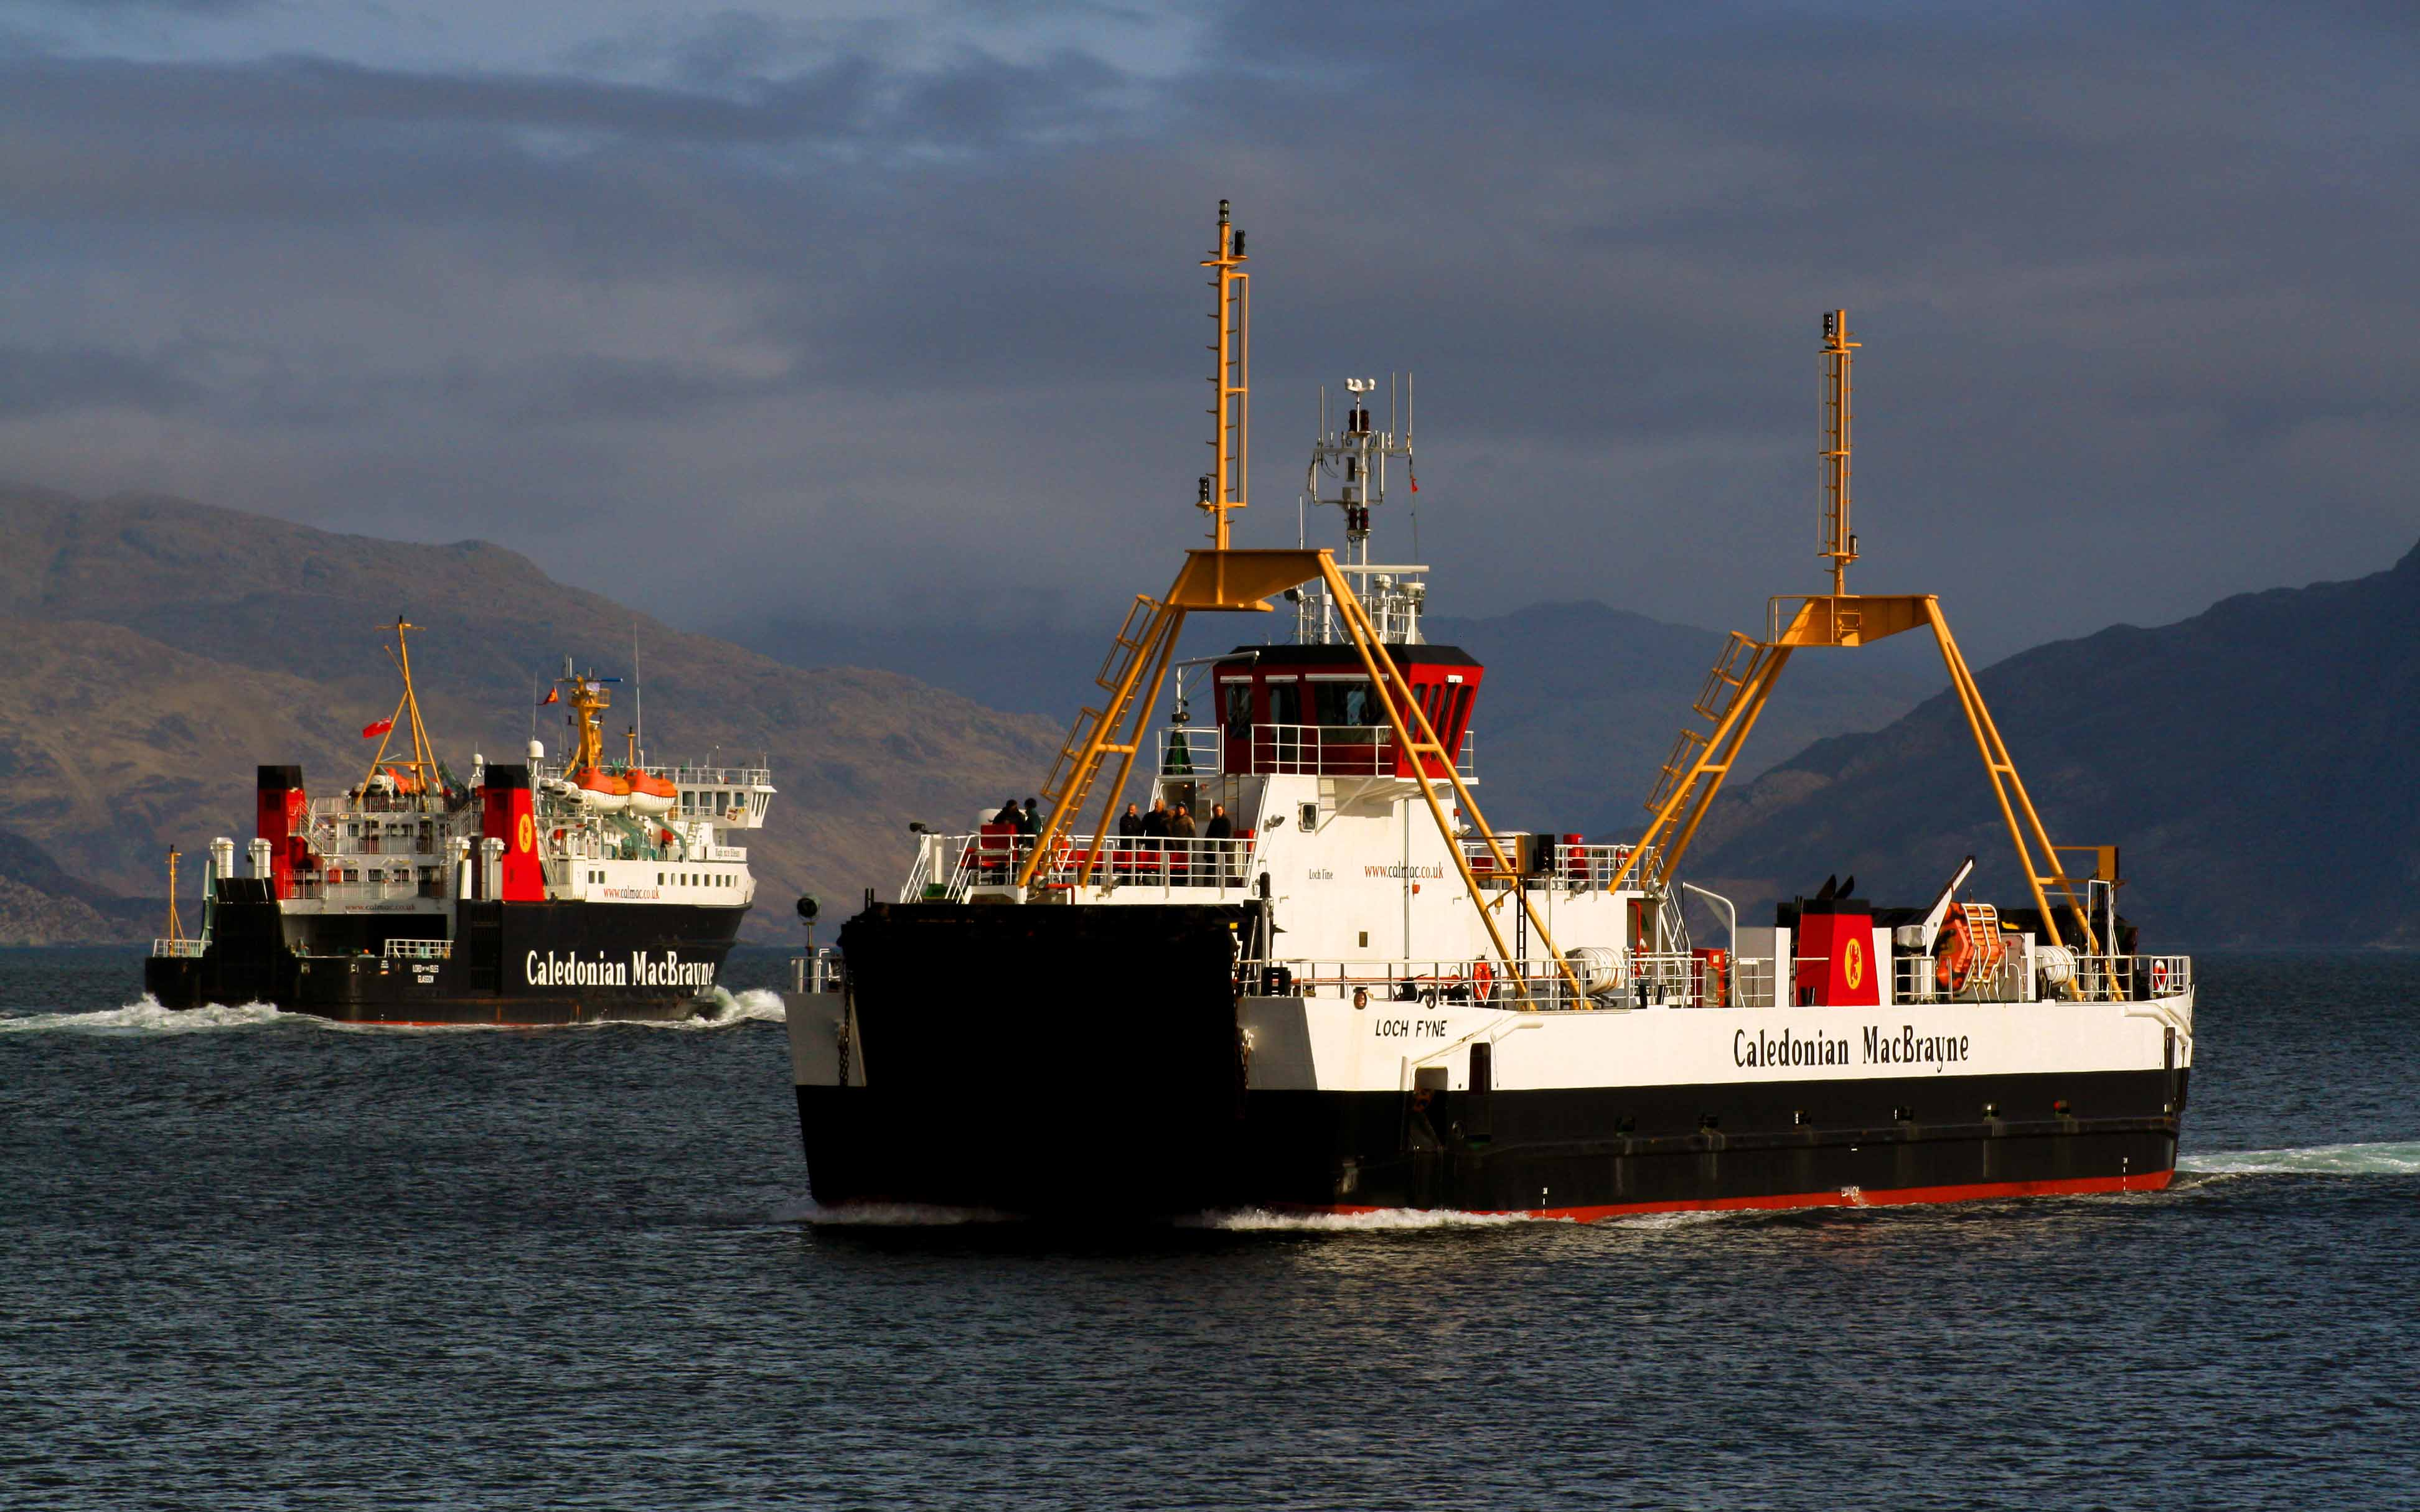 Lord of the Isles and Loch Fyne off Armadale (Ships of CalMac)